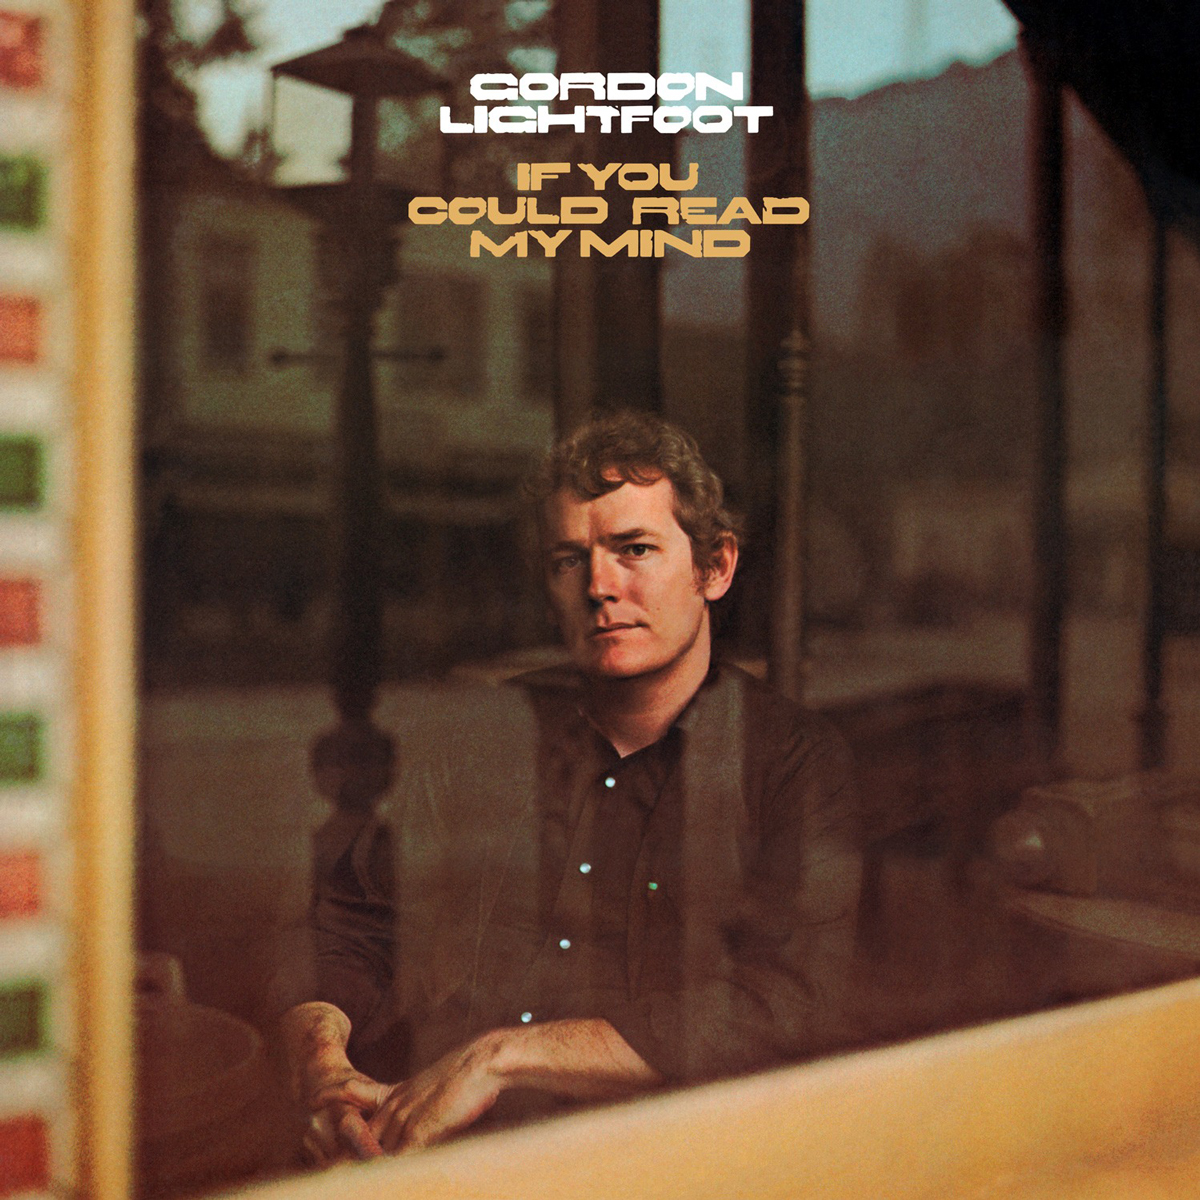 Gordon Lightfoot - If You Could Read My Mind (180 Gram Audiophile Vinyl/Limited Edition)